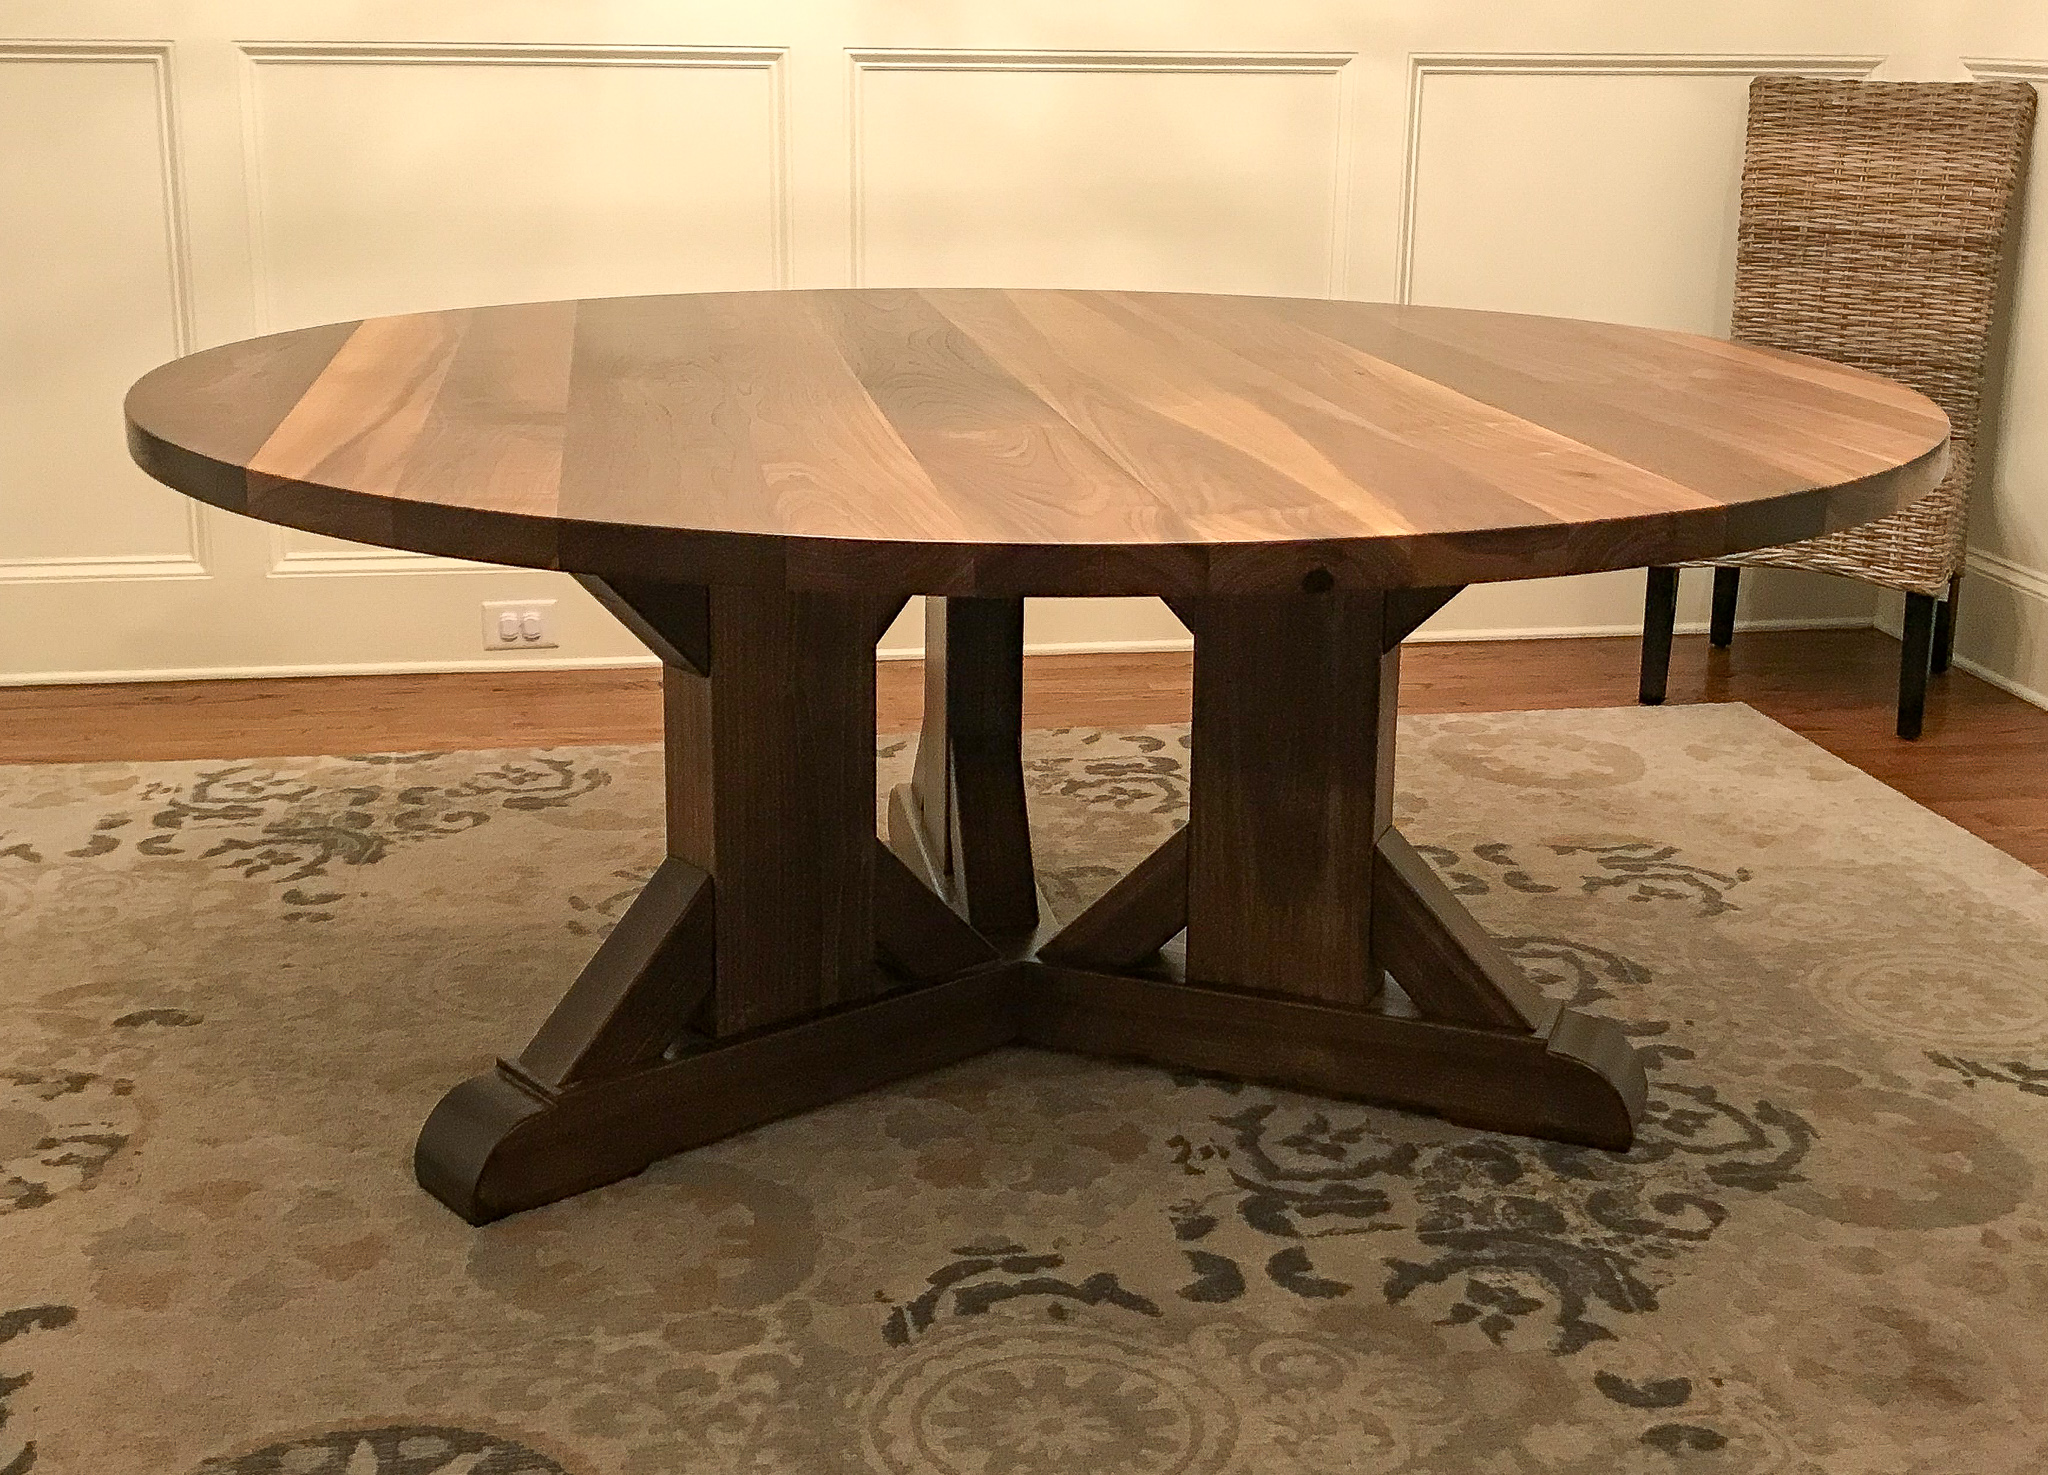 triple pedestal table in dining room with chair